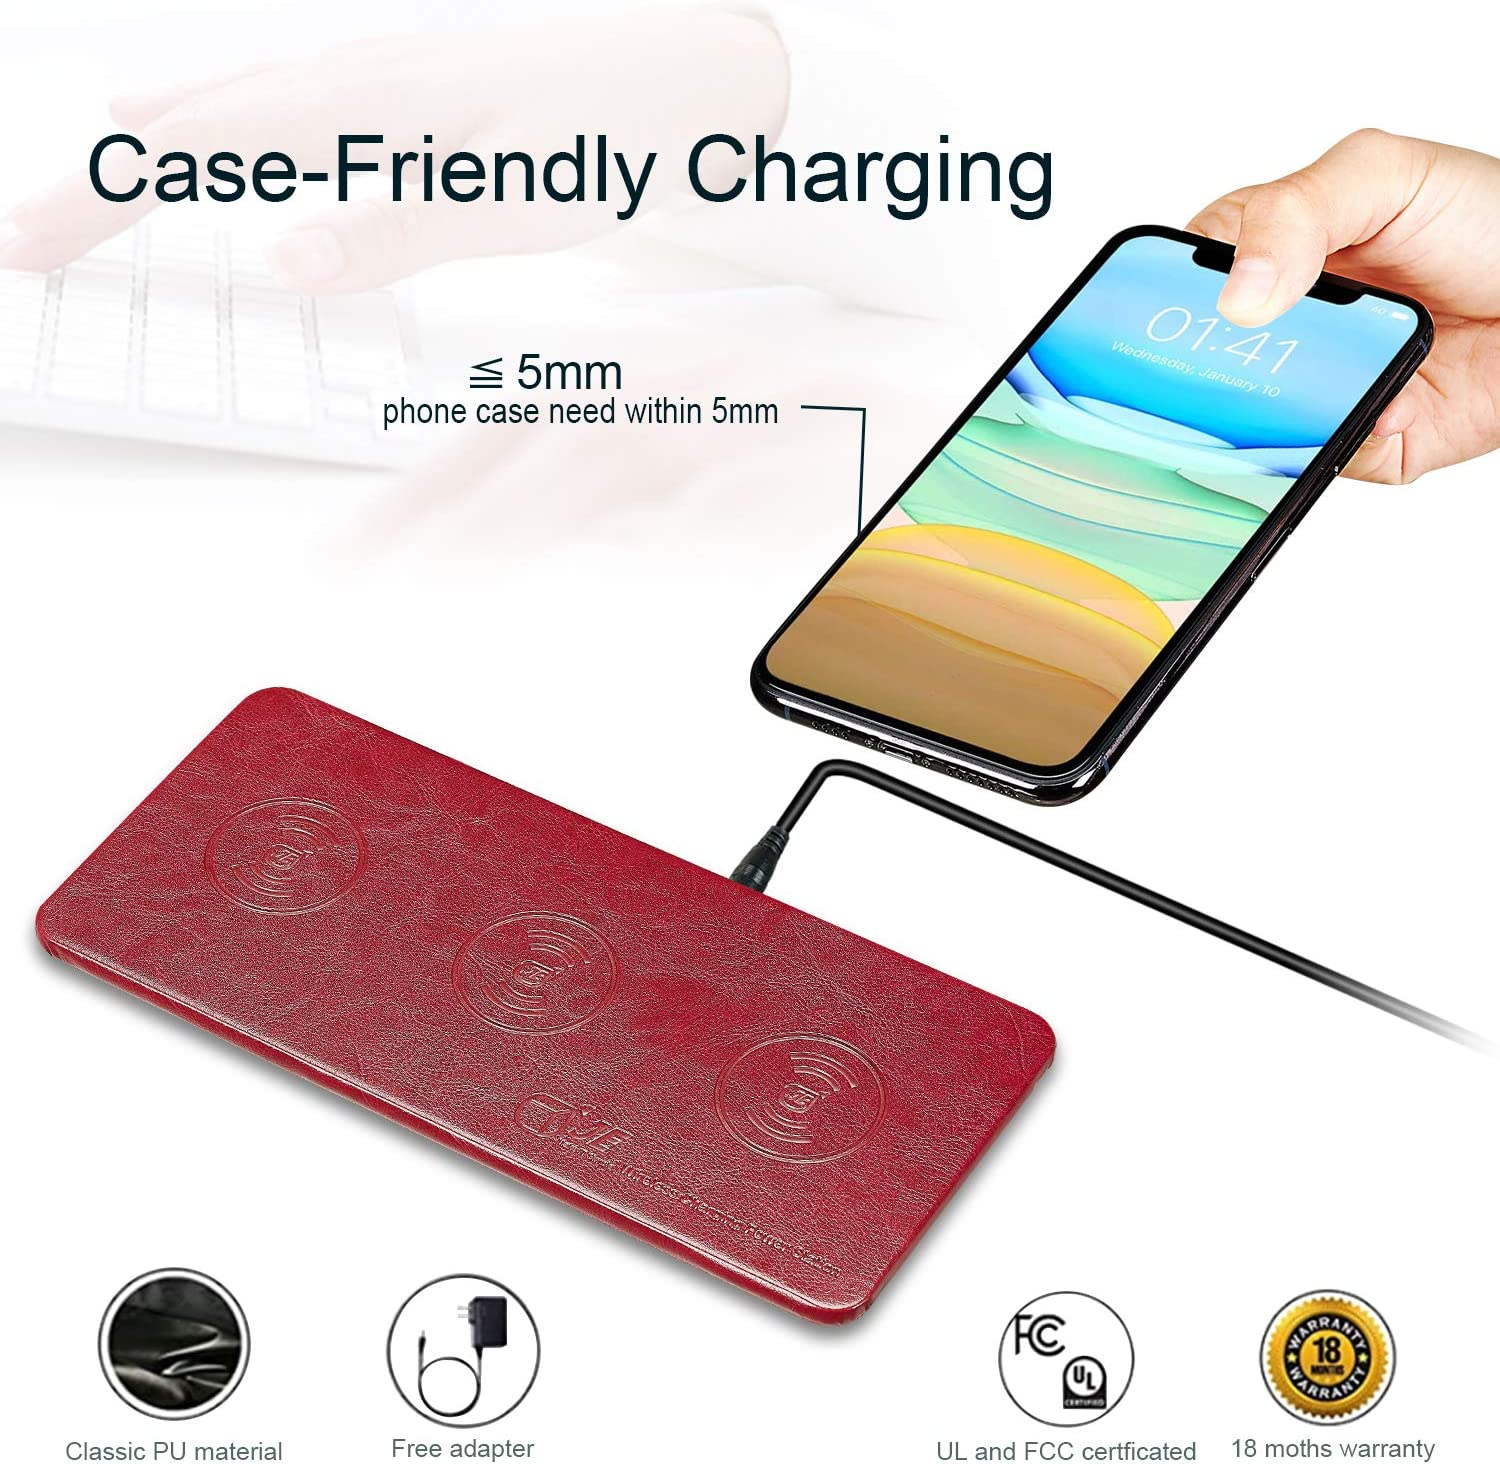 Wireless Charger Station New Airpods /& All QI Enabled Phones JE Qi Certified Ultra-Slim Leather Wireless Charging pad for Multiple Devices Compatible iPhone11//11 Pro Max//XR//8 Plus,Galaxy Note Series